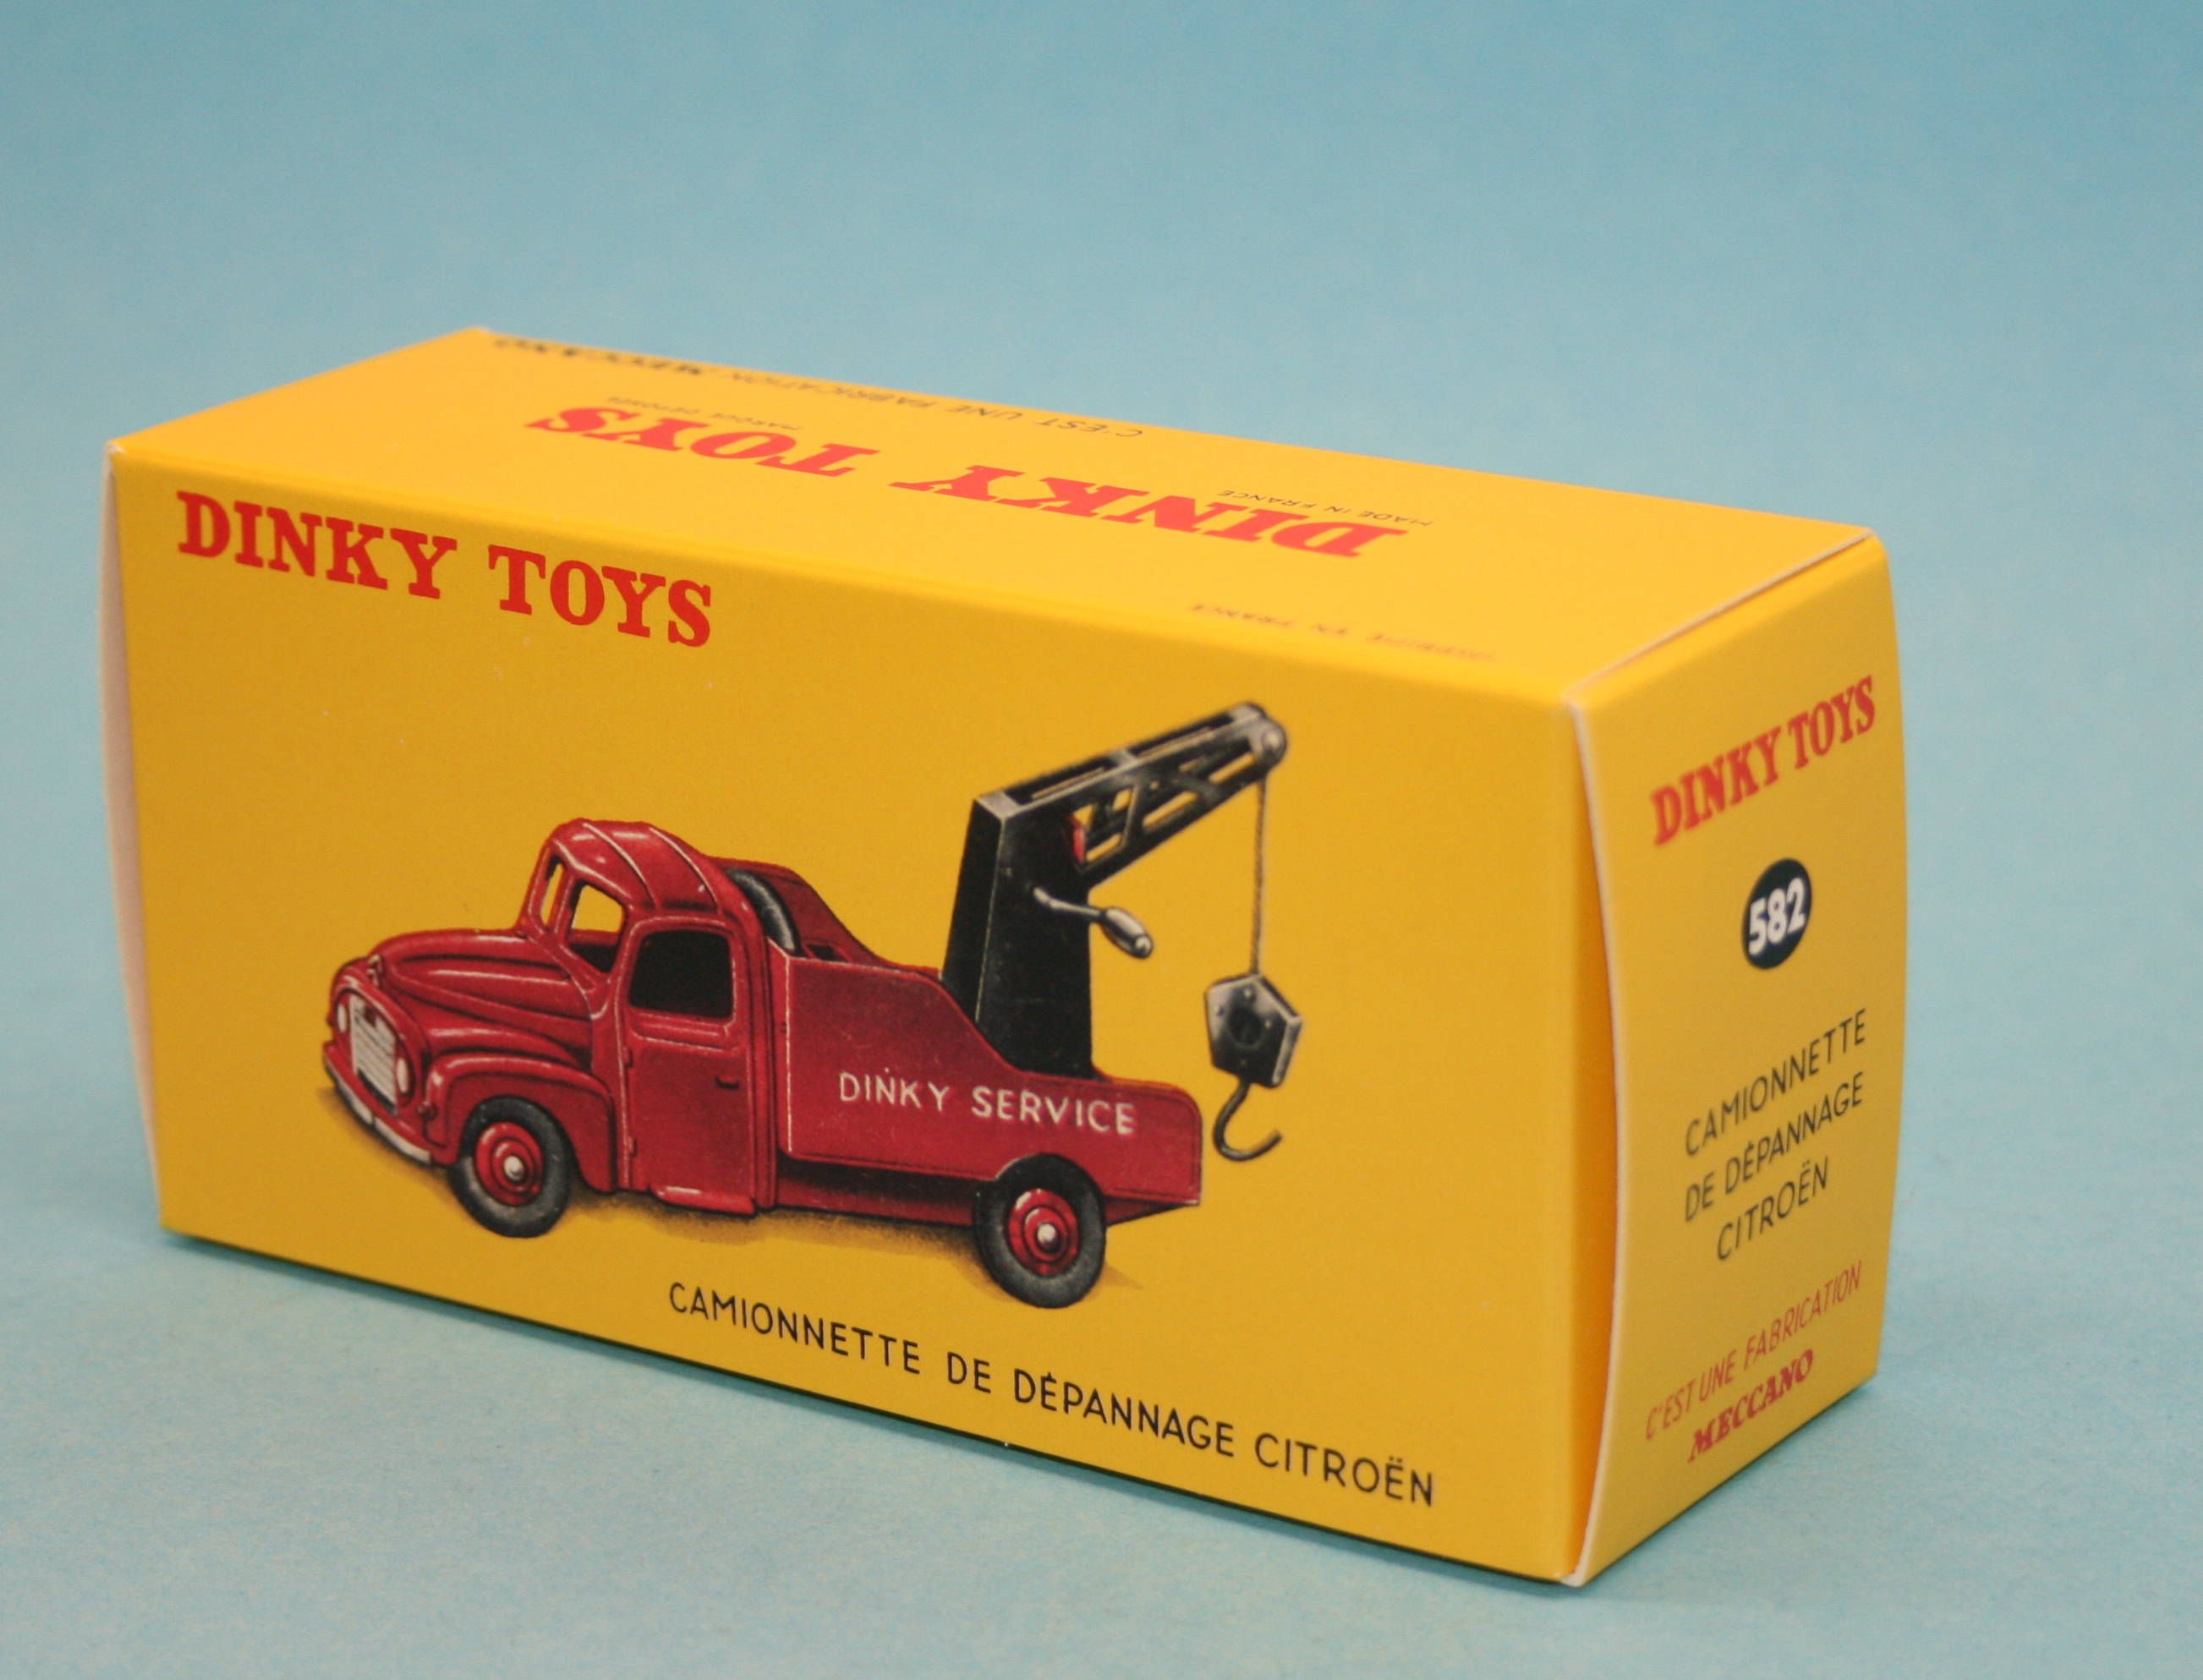 BOITES REPRODUCTION POUR DINKY TOYS